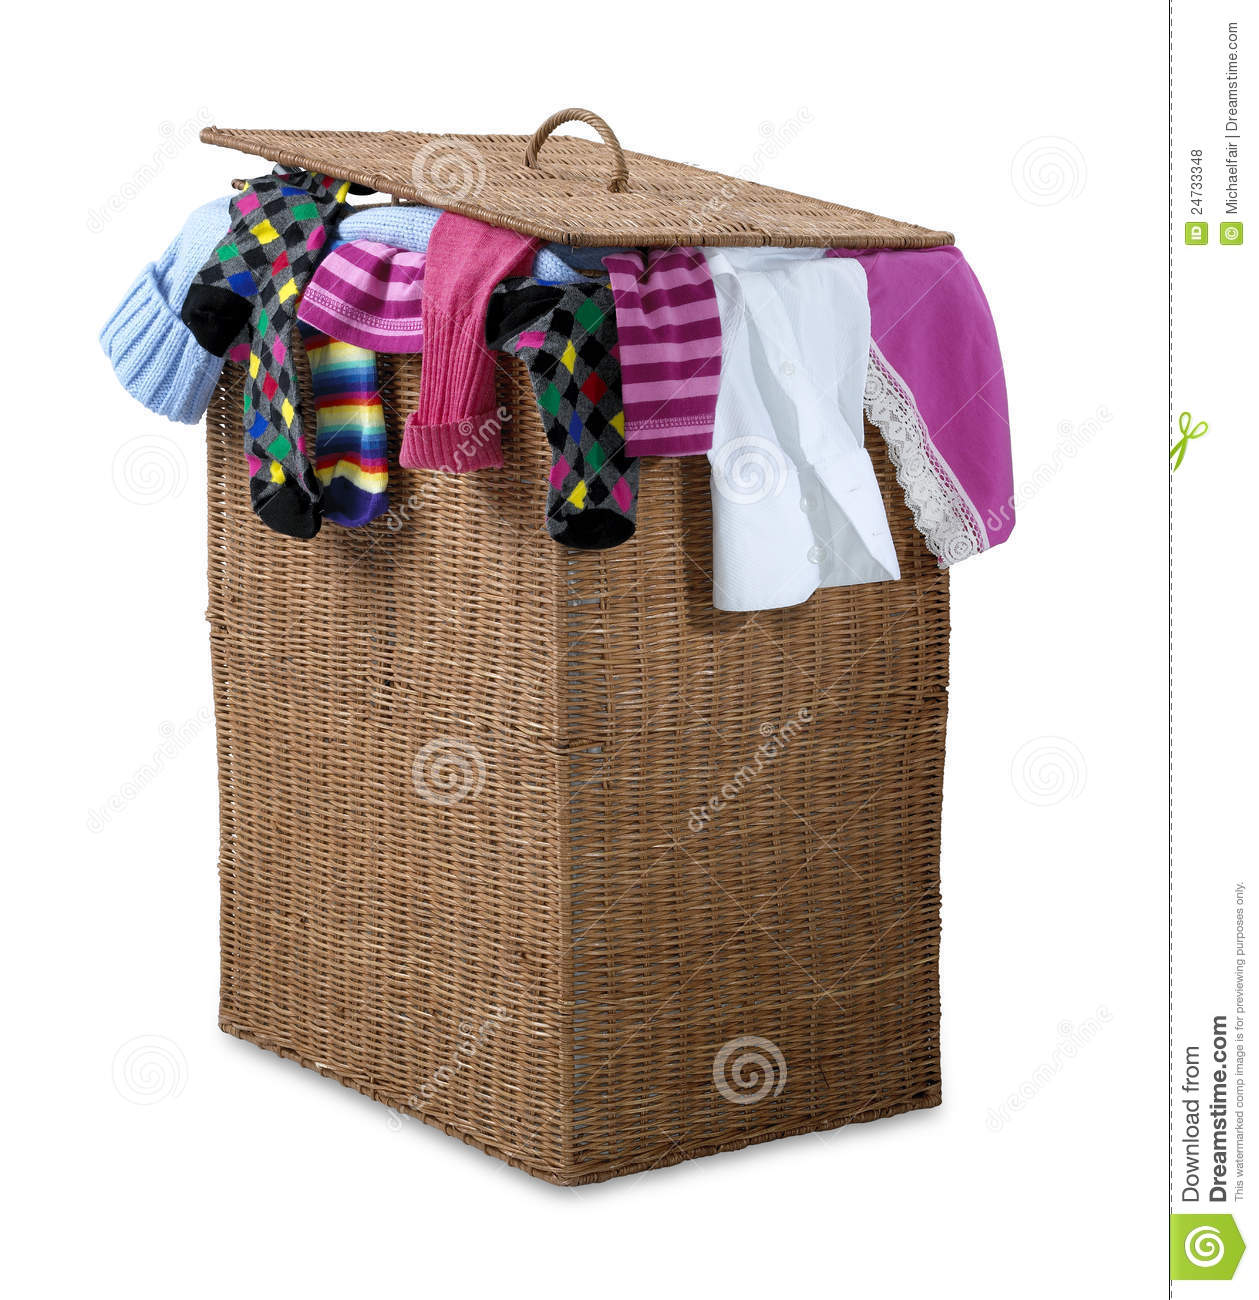 Put Dirty Clothes In Hamper Clipart Clipart Suggest Mini Hamper.